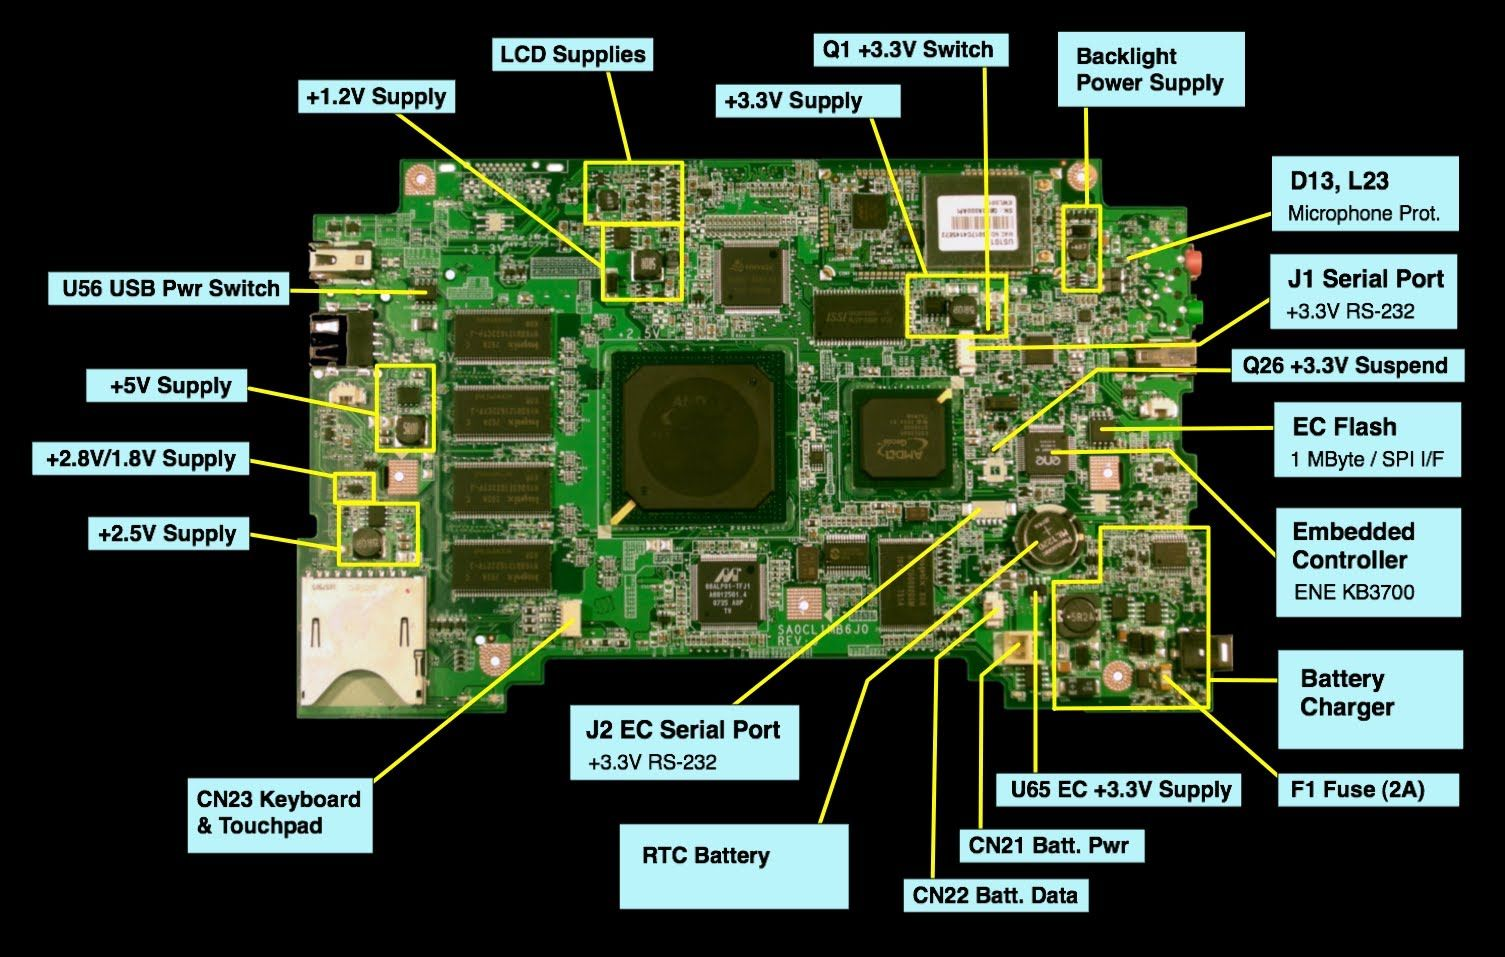 hight resolution of diagram showing the inside components of a laptop battery stockdiagram showing the internal parts of computer